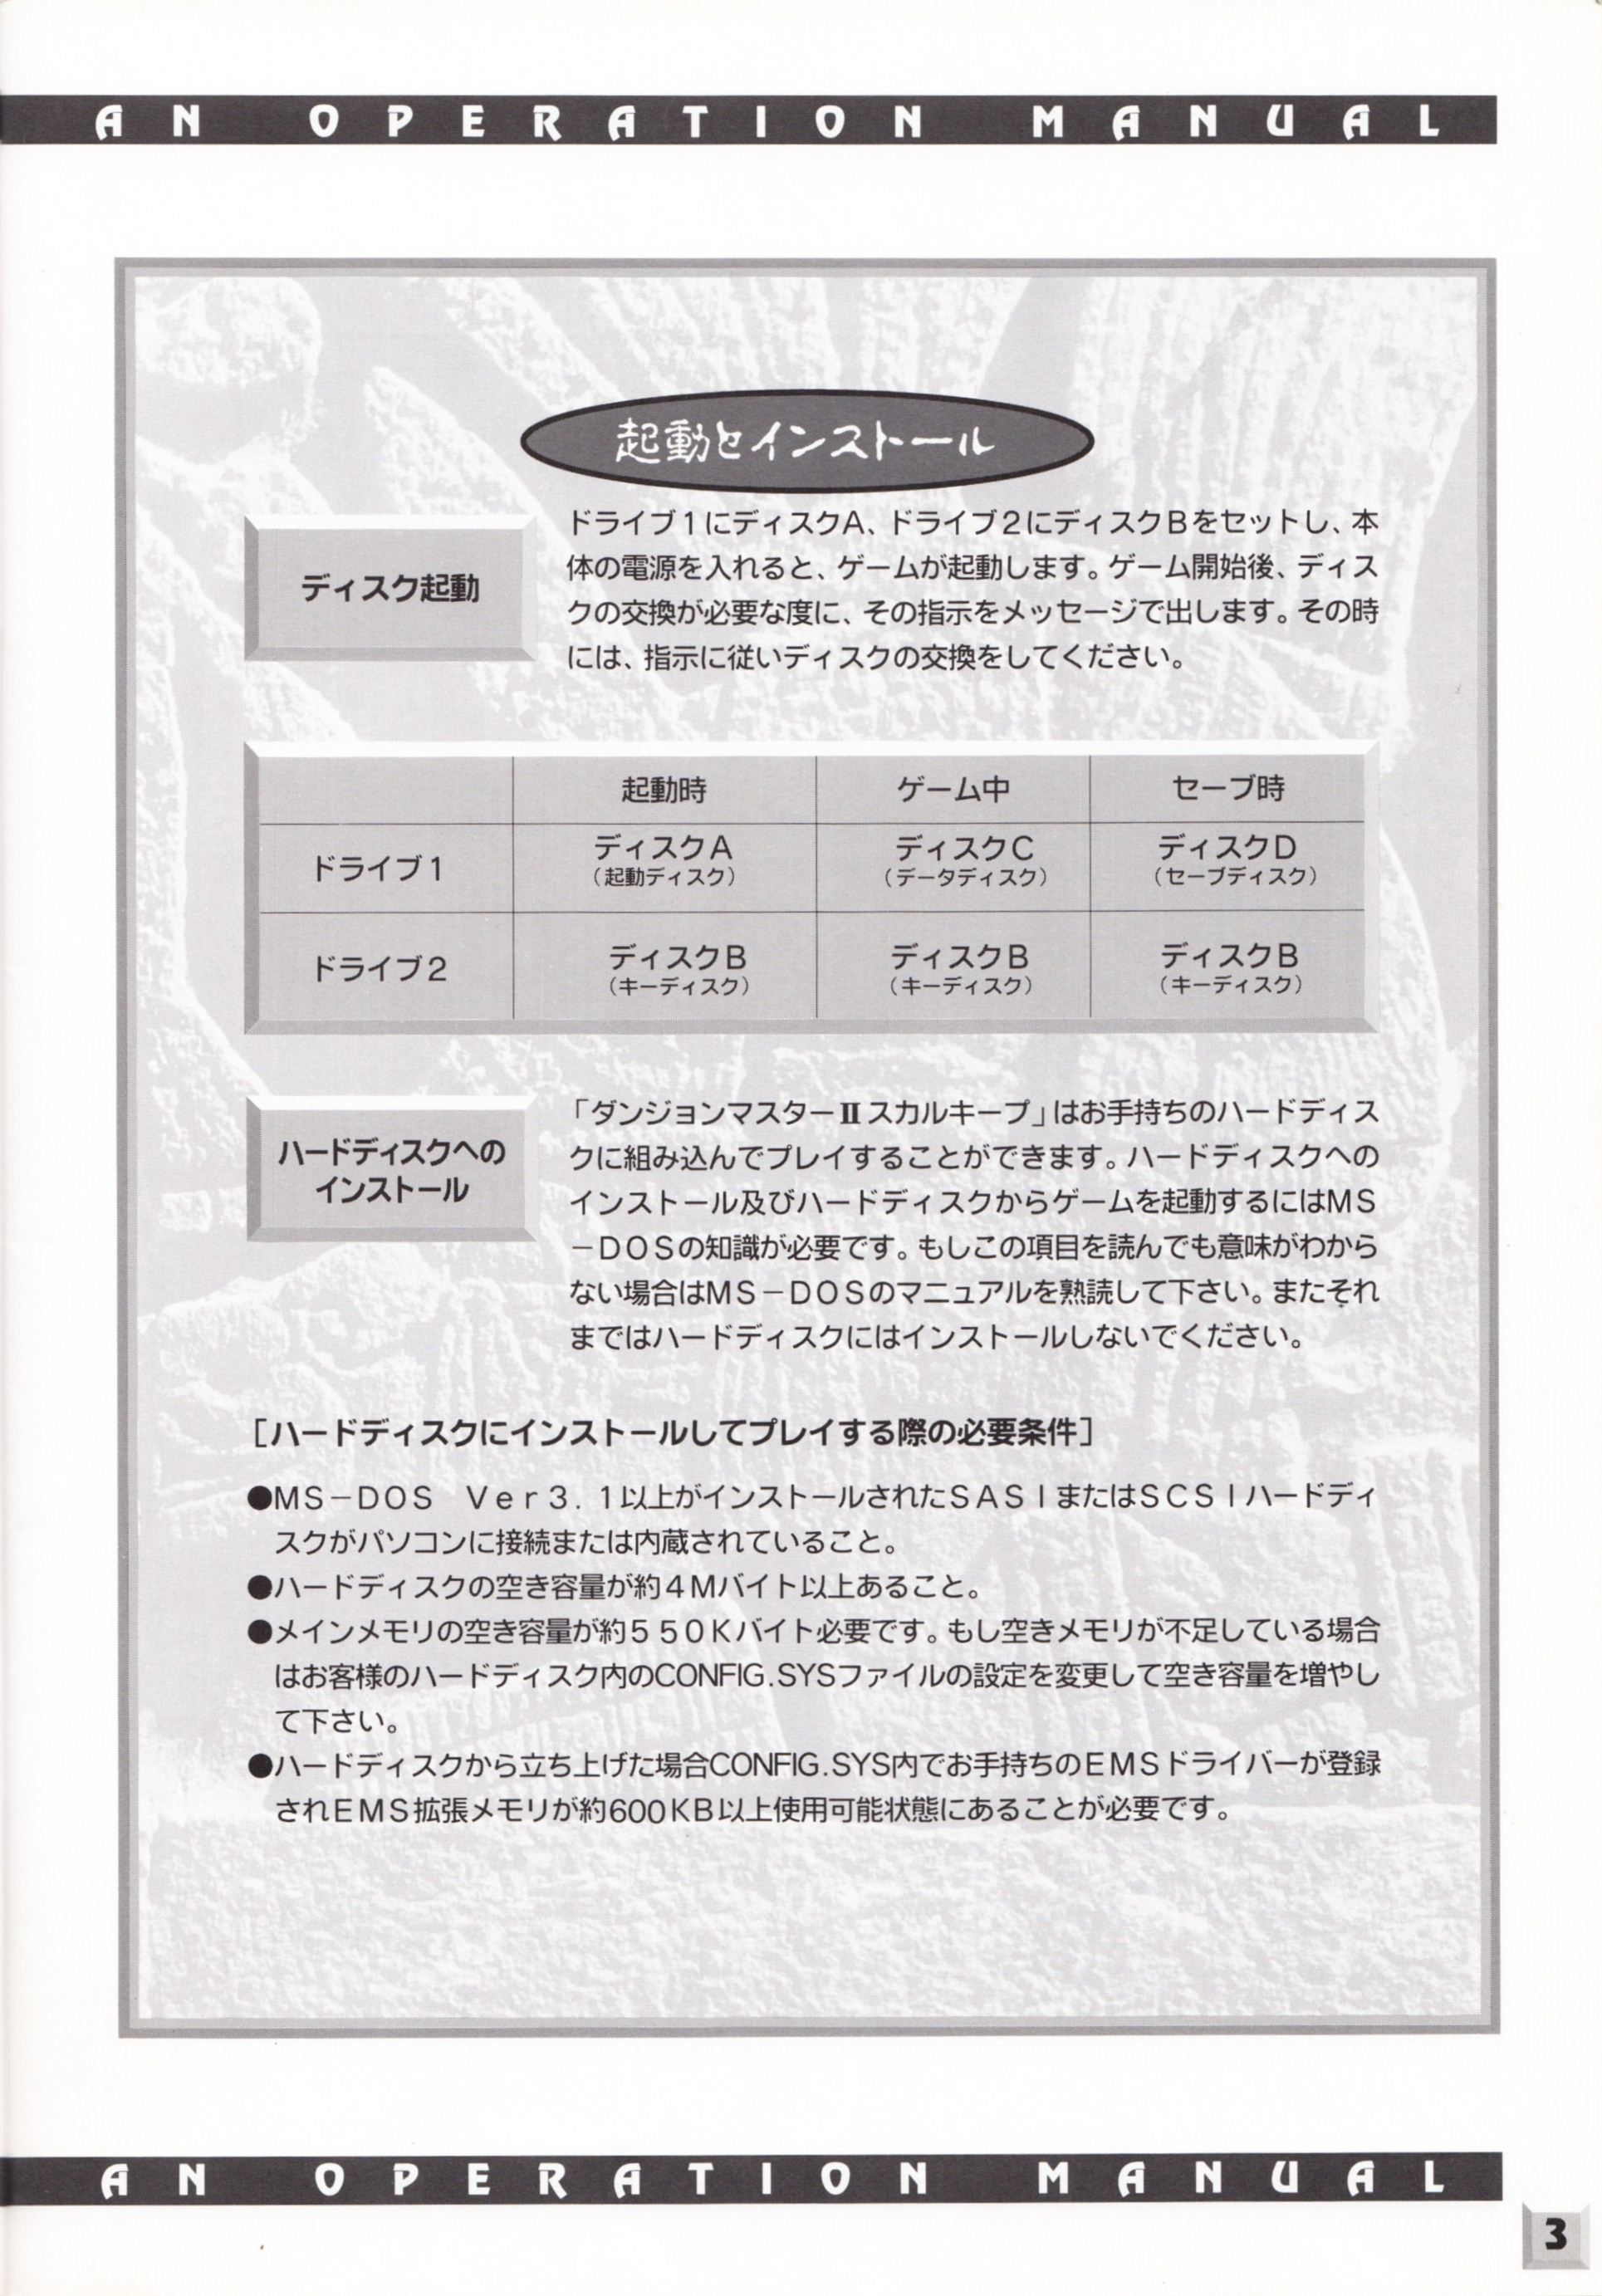 Game - Dungeon Master II - JP - PC-9801 - 5.25-inch - An Operation Manual - Page 005 - Scan